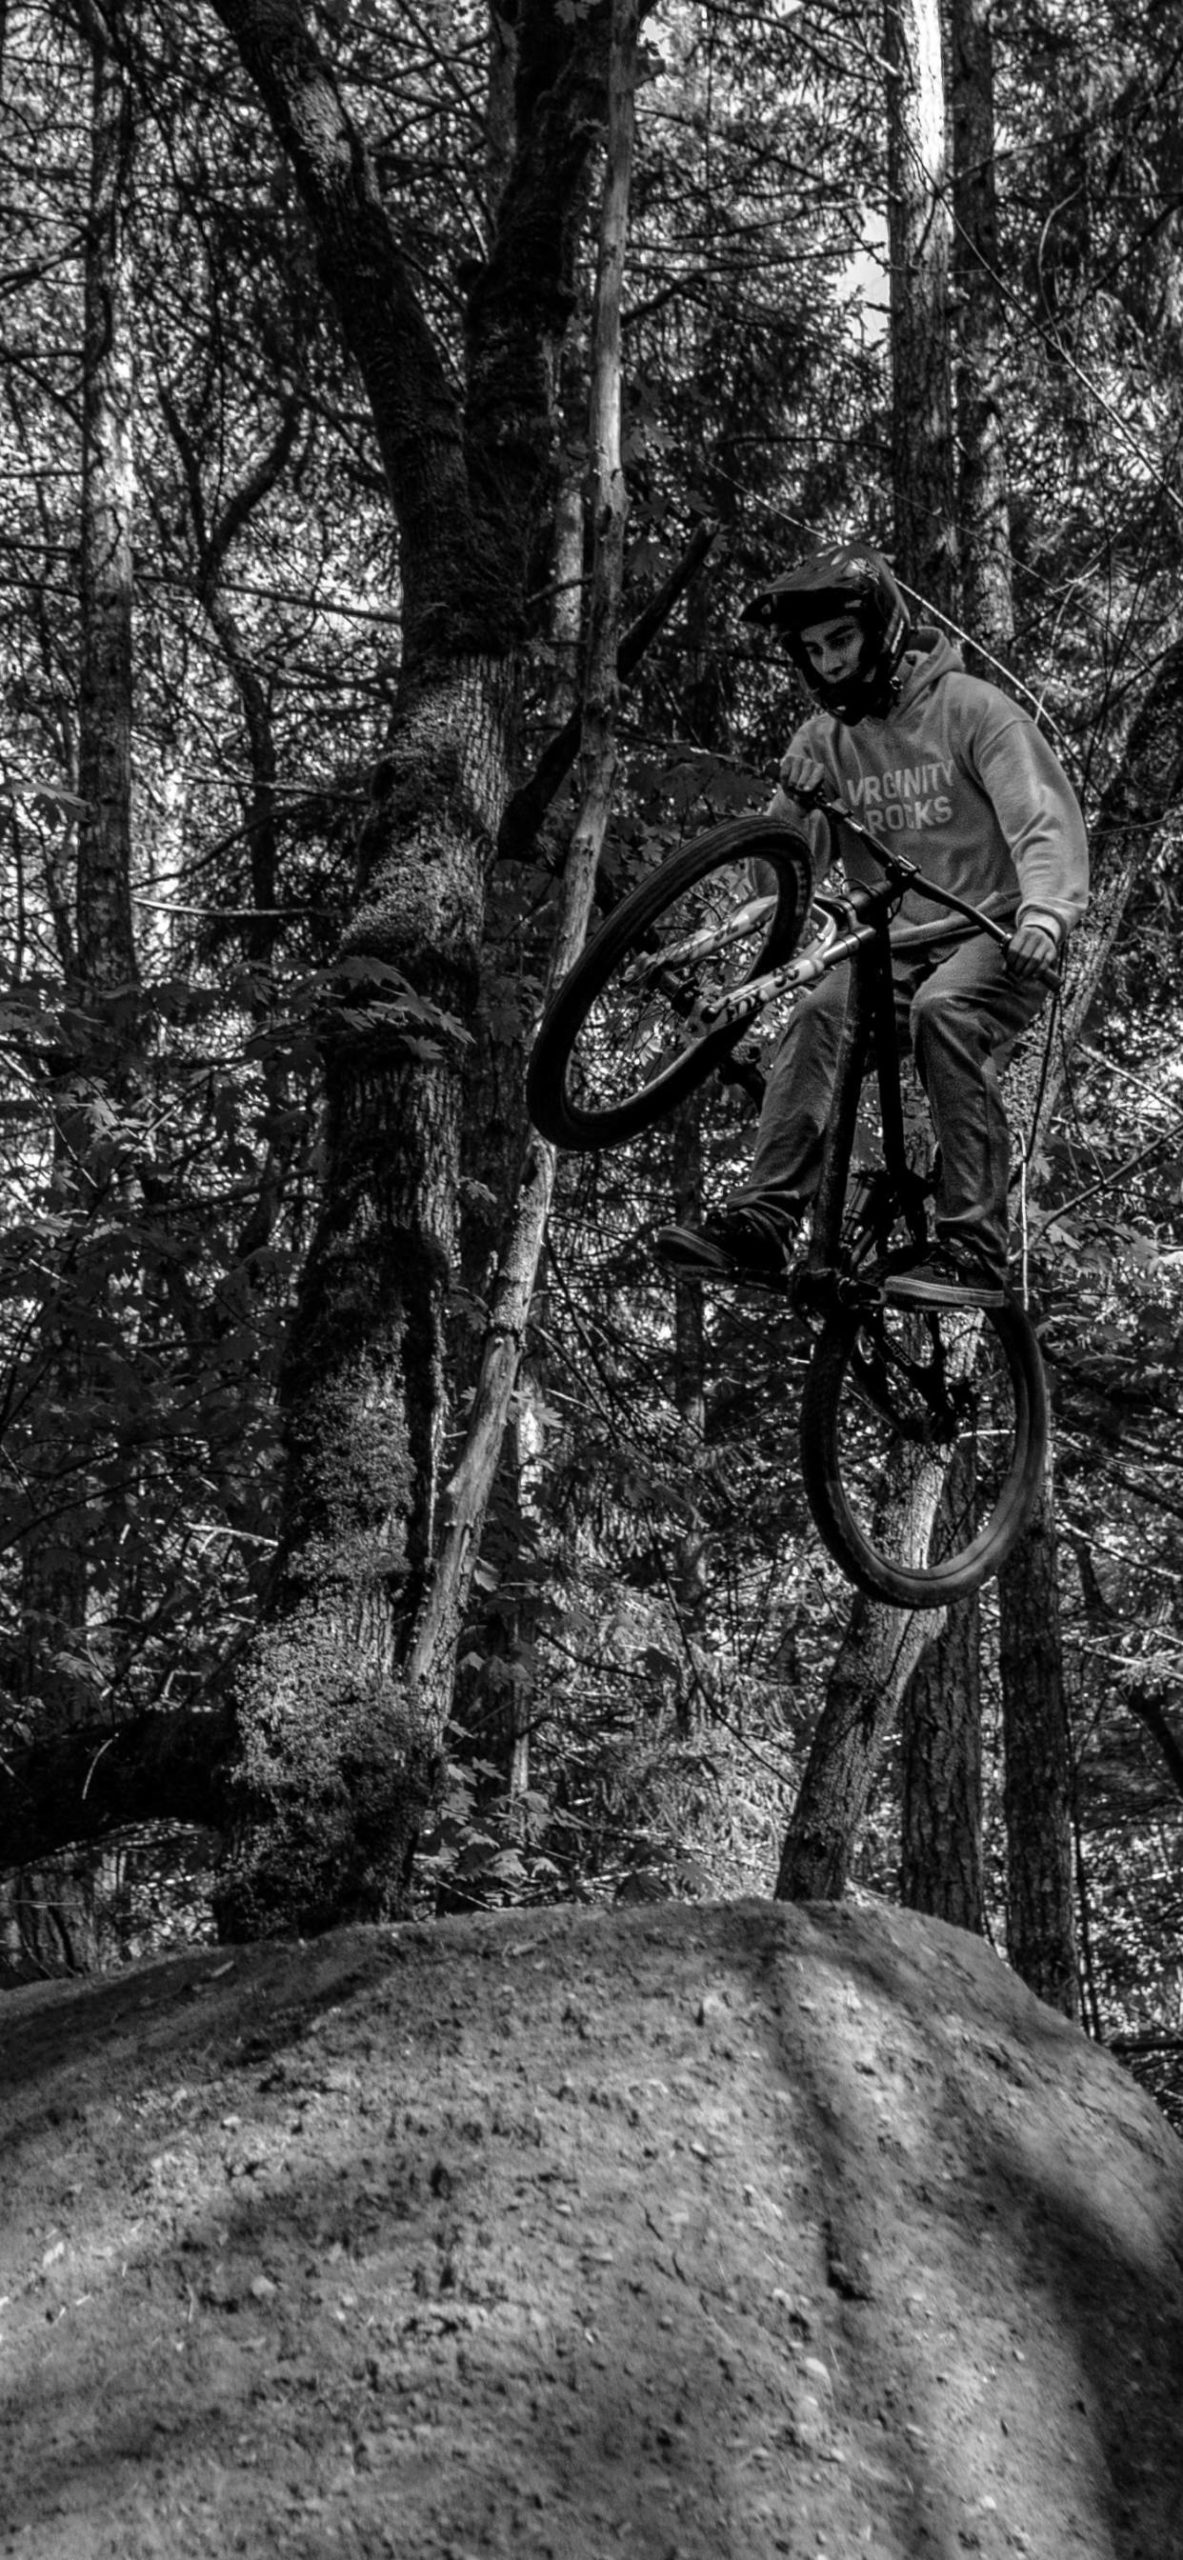 iPhone wallpapers bike monocolor forest scaled Bike